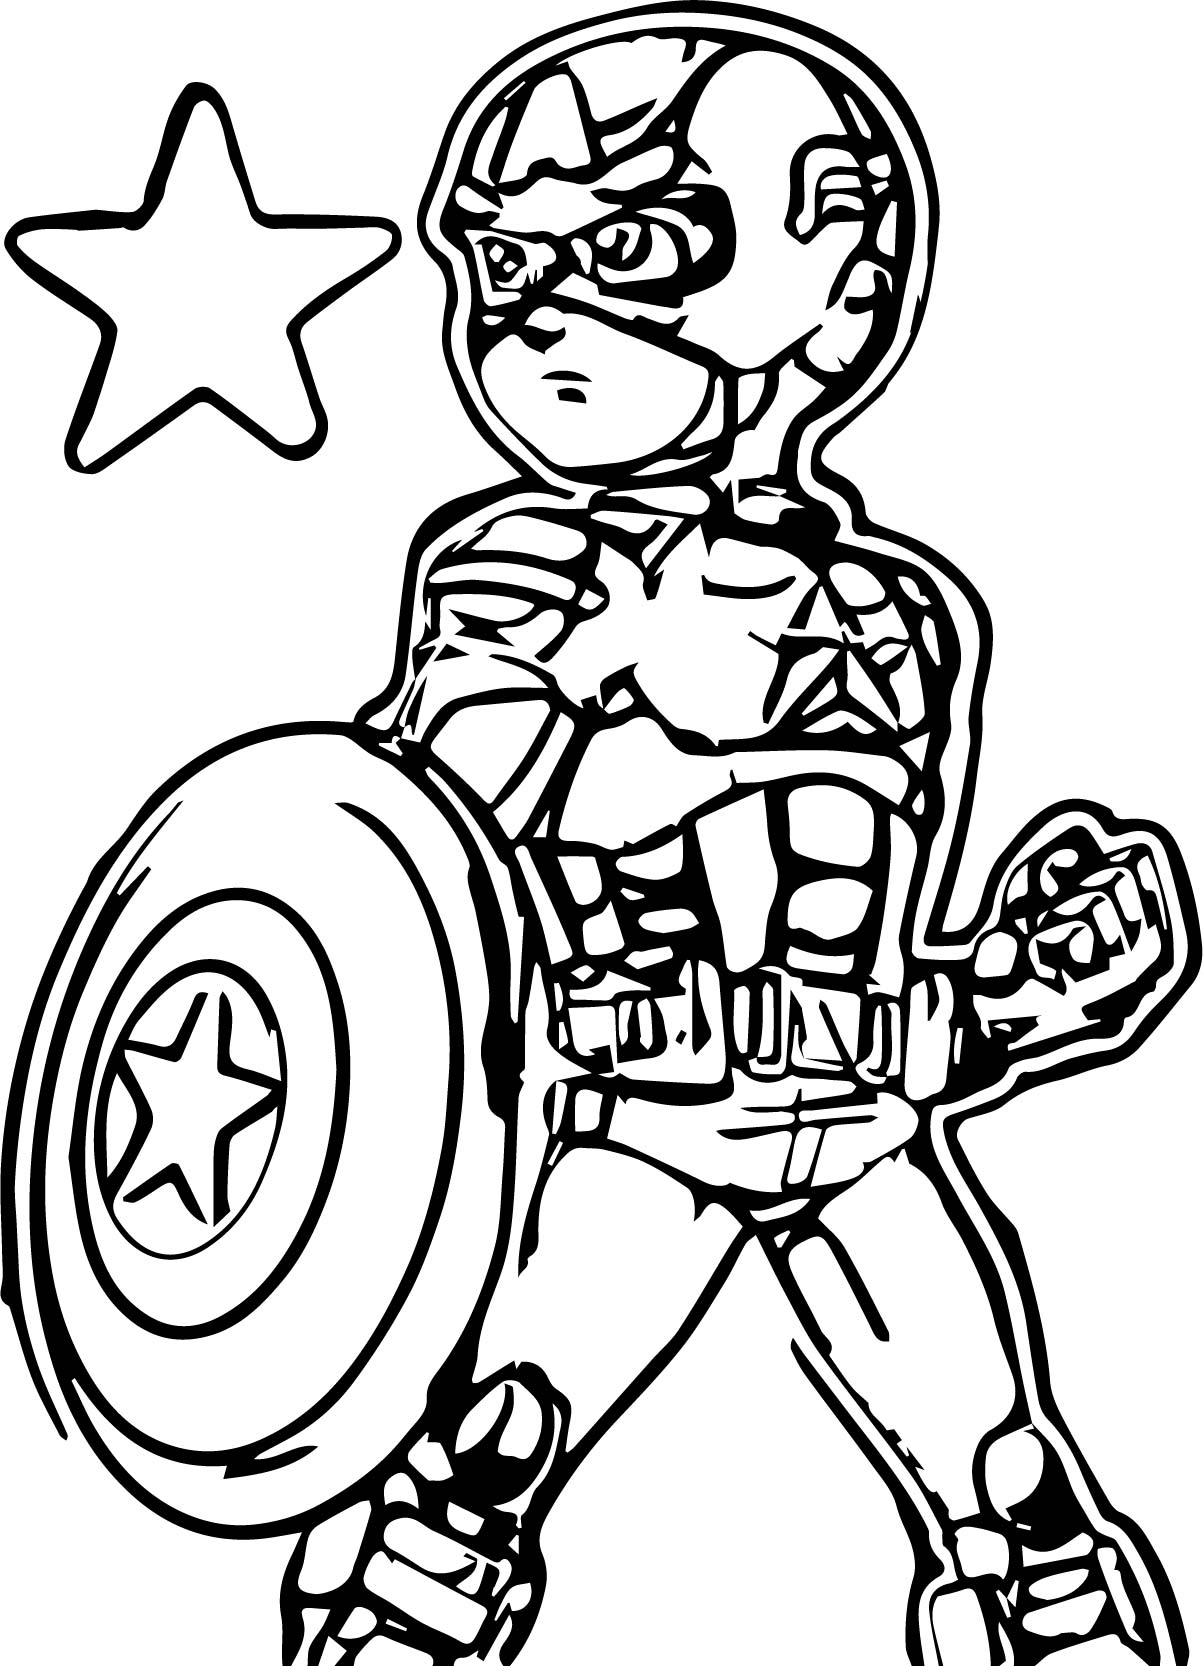 Children captain america coloring page for Coloring pages captain america